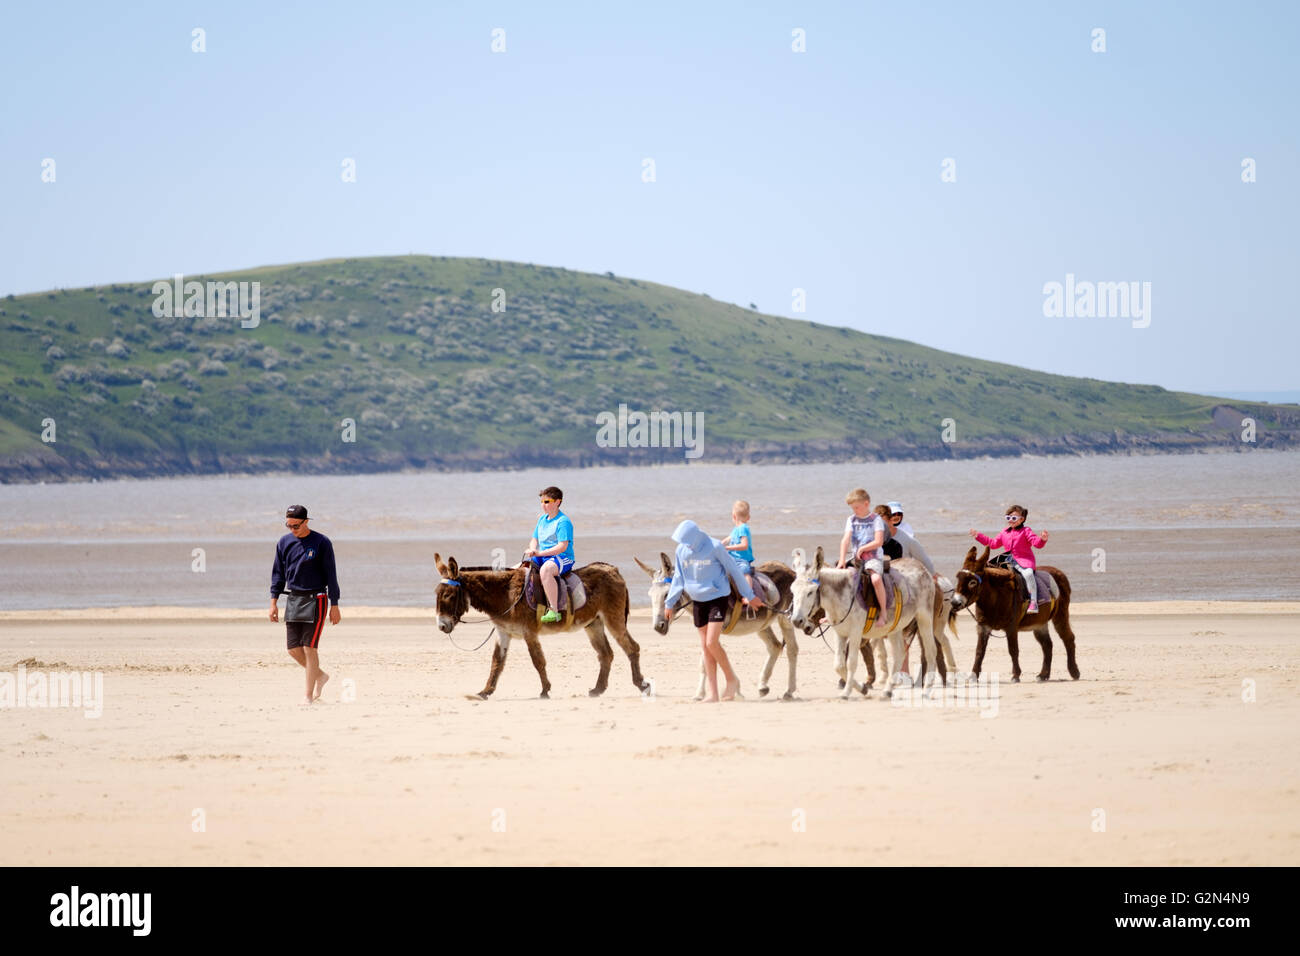 A group of children riding along a beach on seaside donkeys Stock Photo